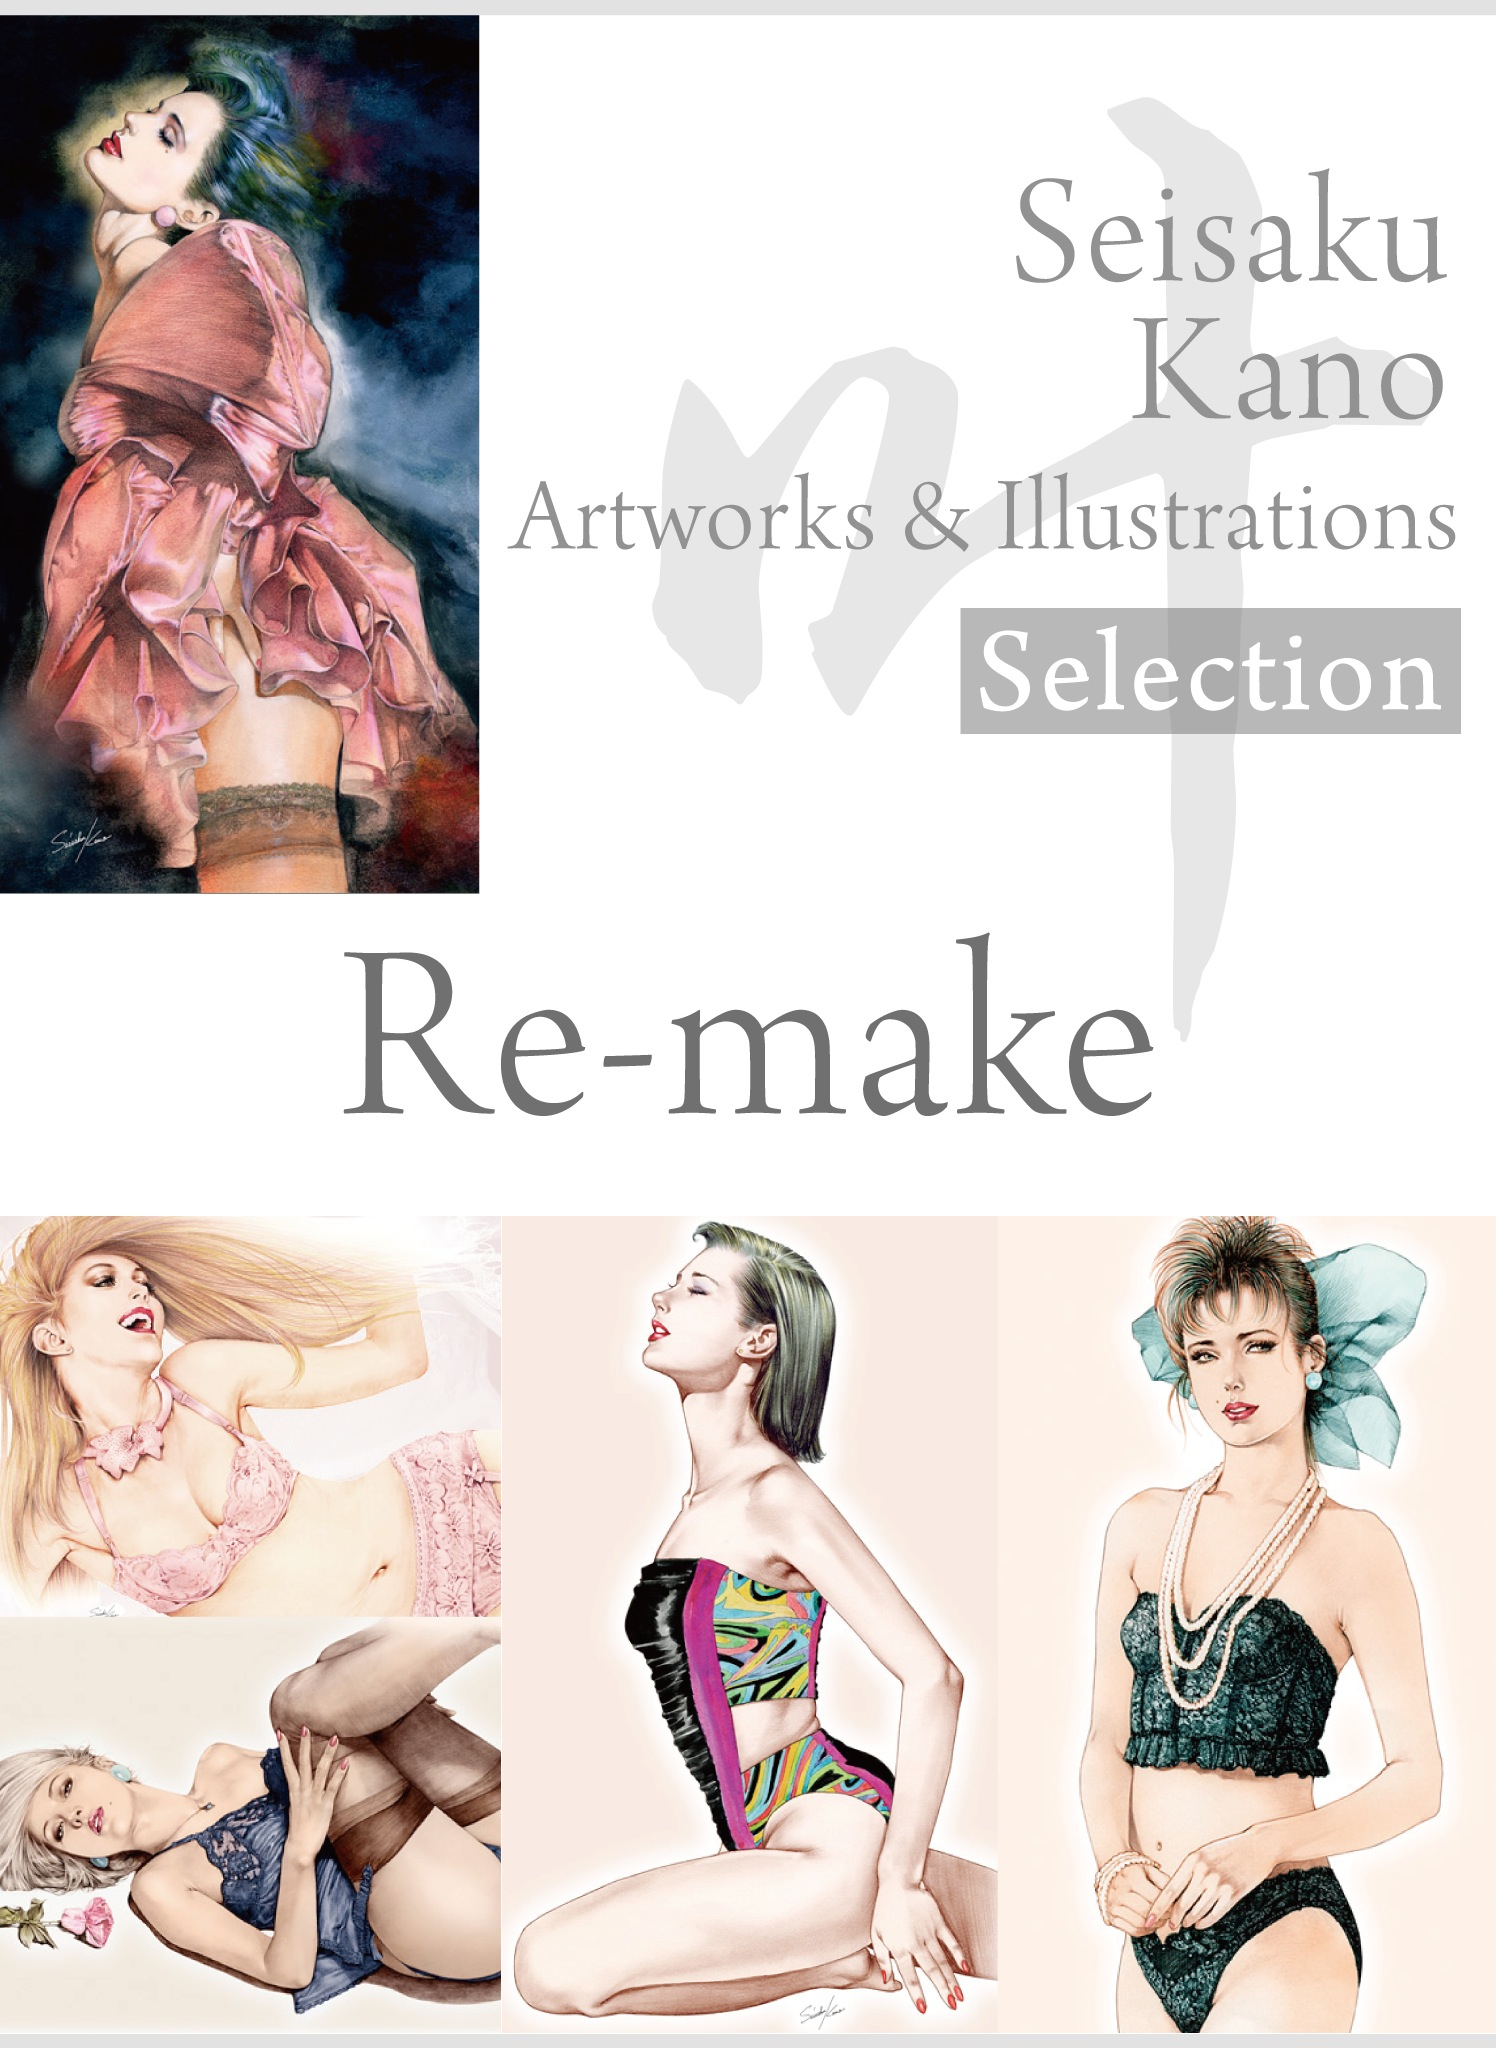 叶精作 作品集②(分冊版 4/4)Seisaku Kano Artworks & illustrations Selection – Re-make